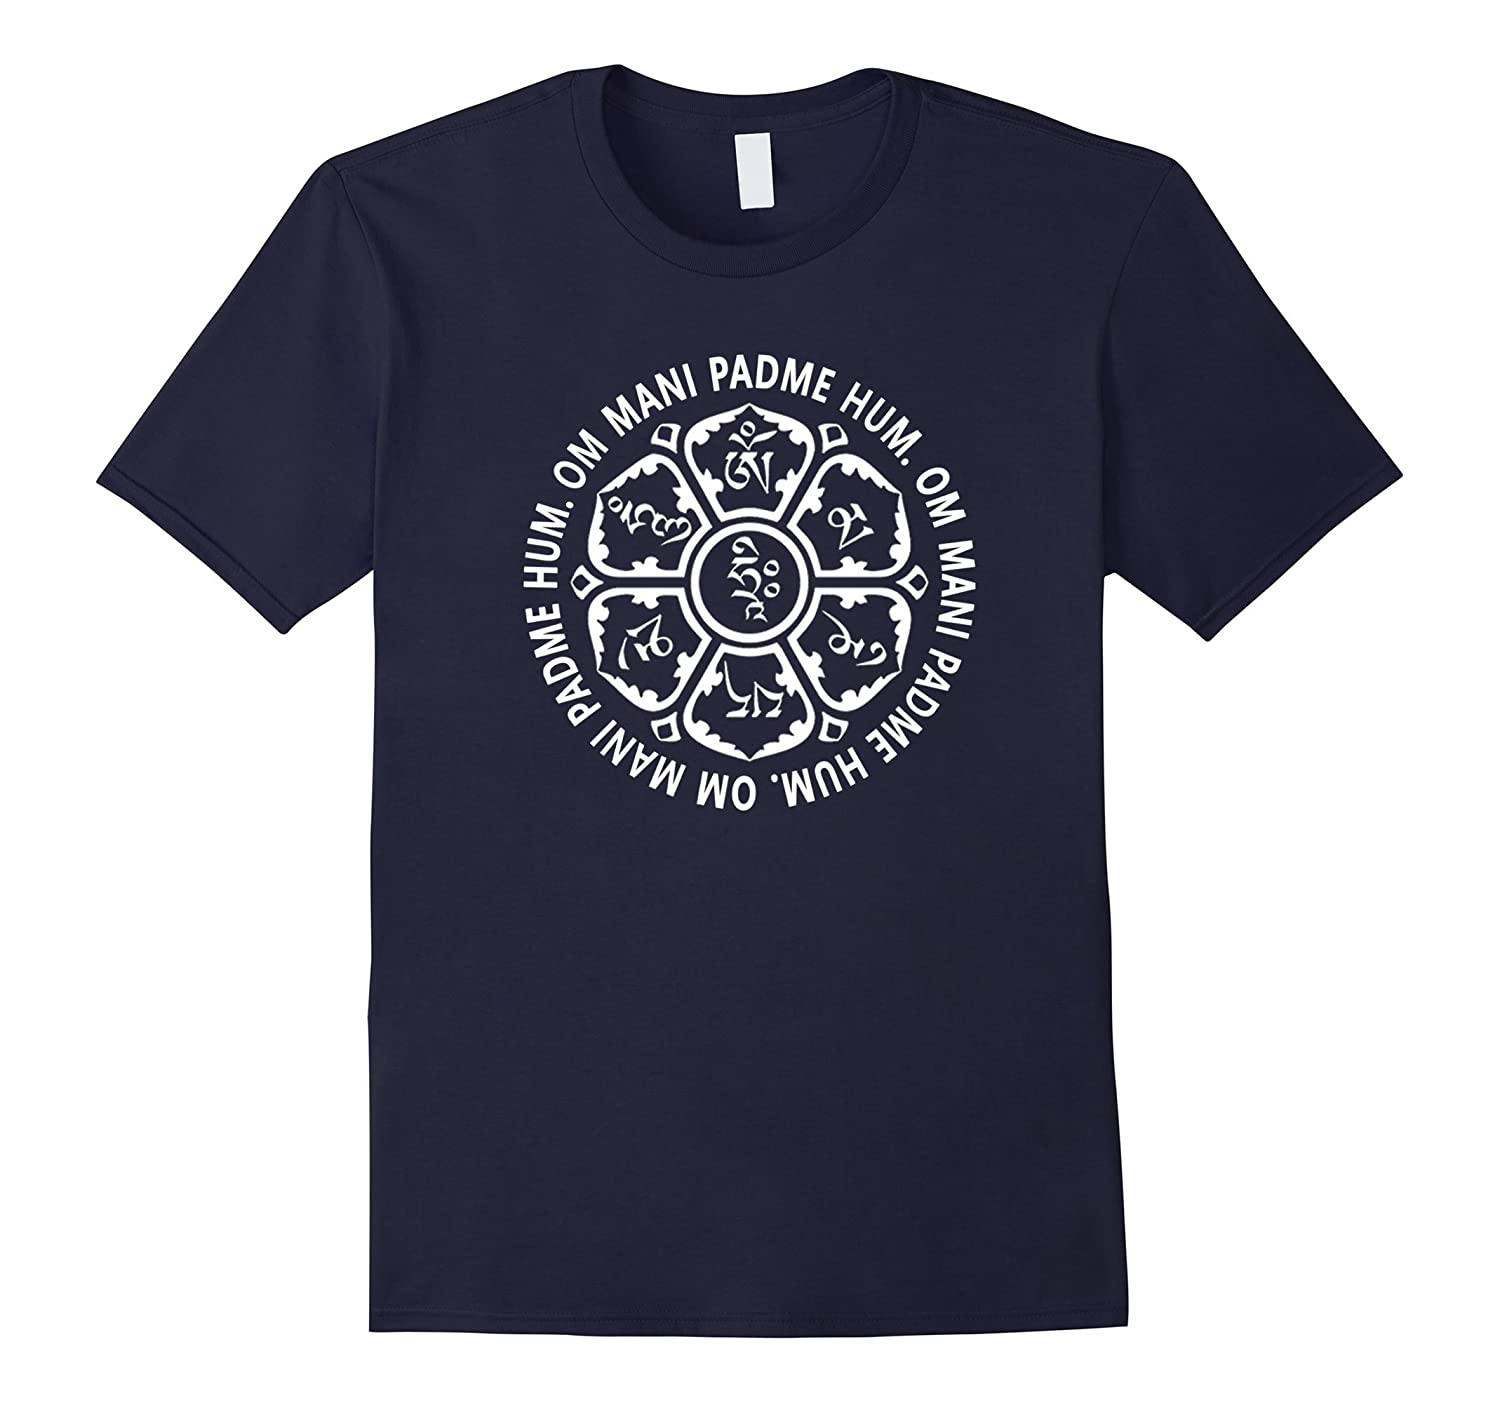 Om Mani Padme Hum Mantra t-shirt for women men or youth-Art